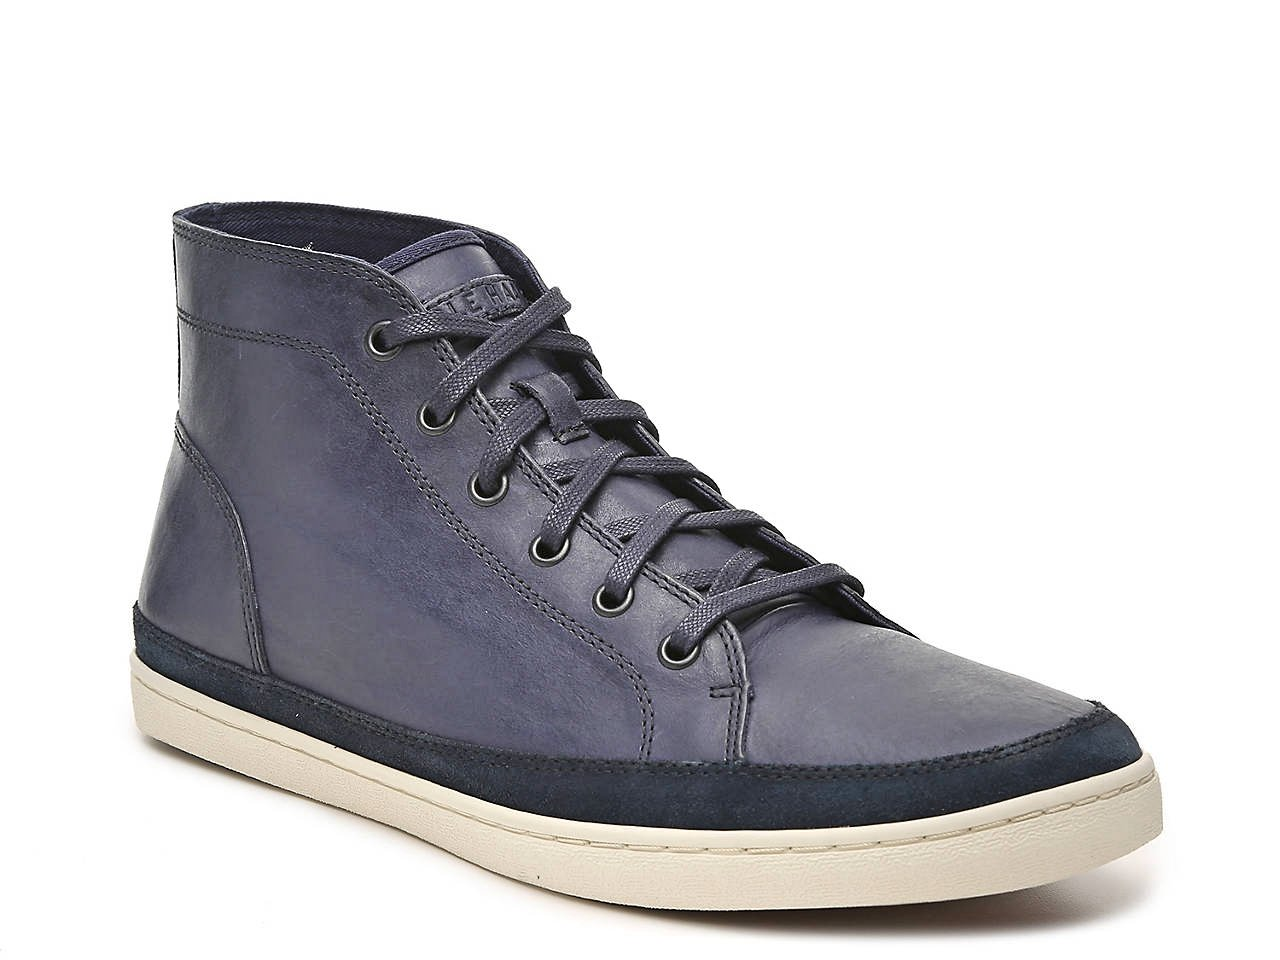 best shoes to wear with jeans men